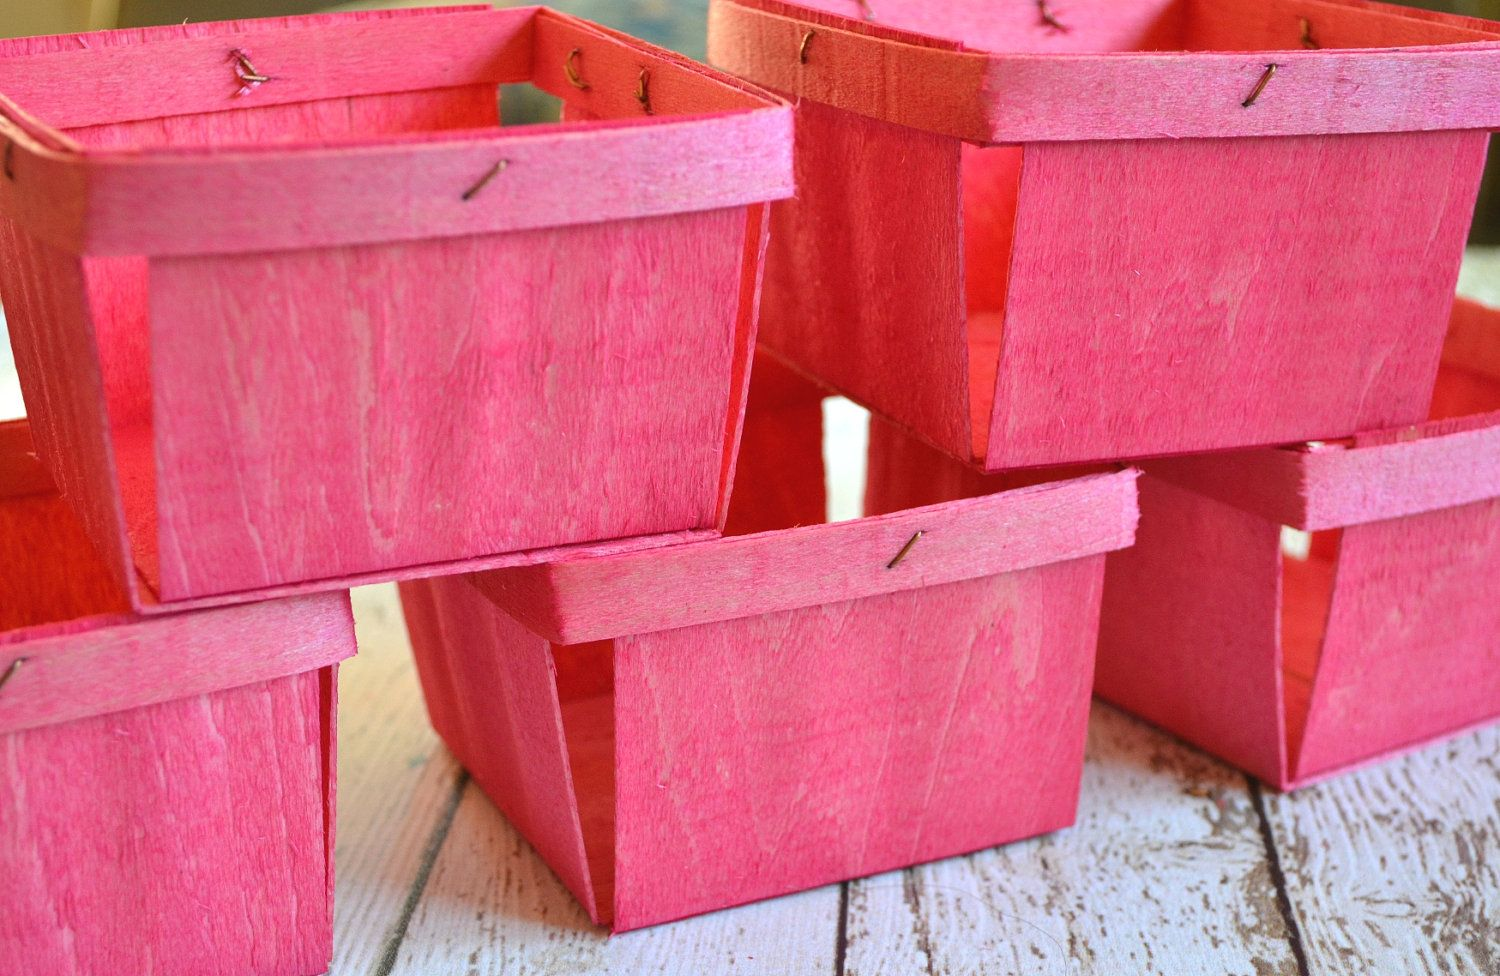 10 hand-stained wood pint berry baskets - you choose the color ...